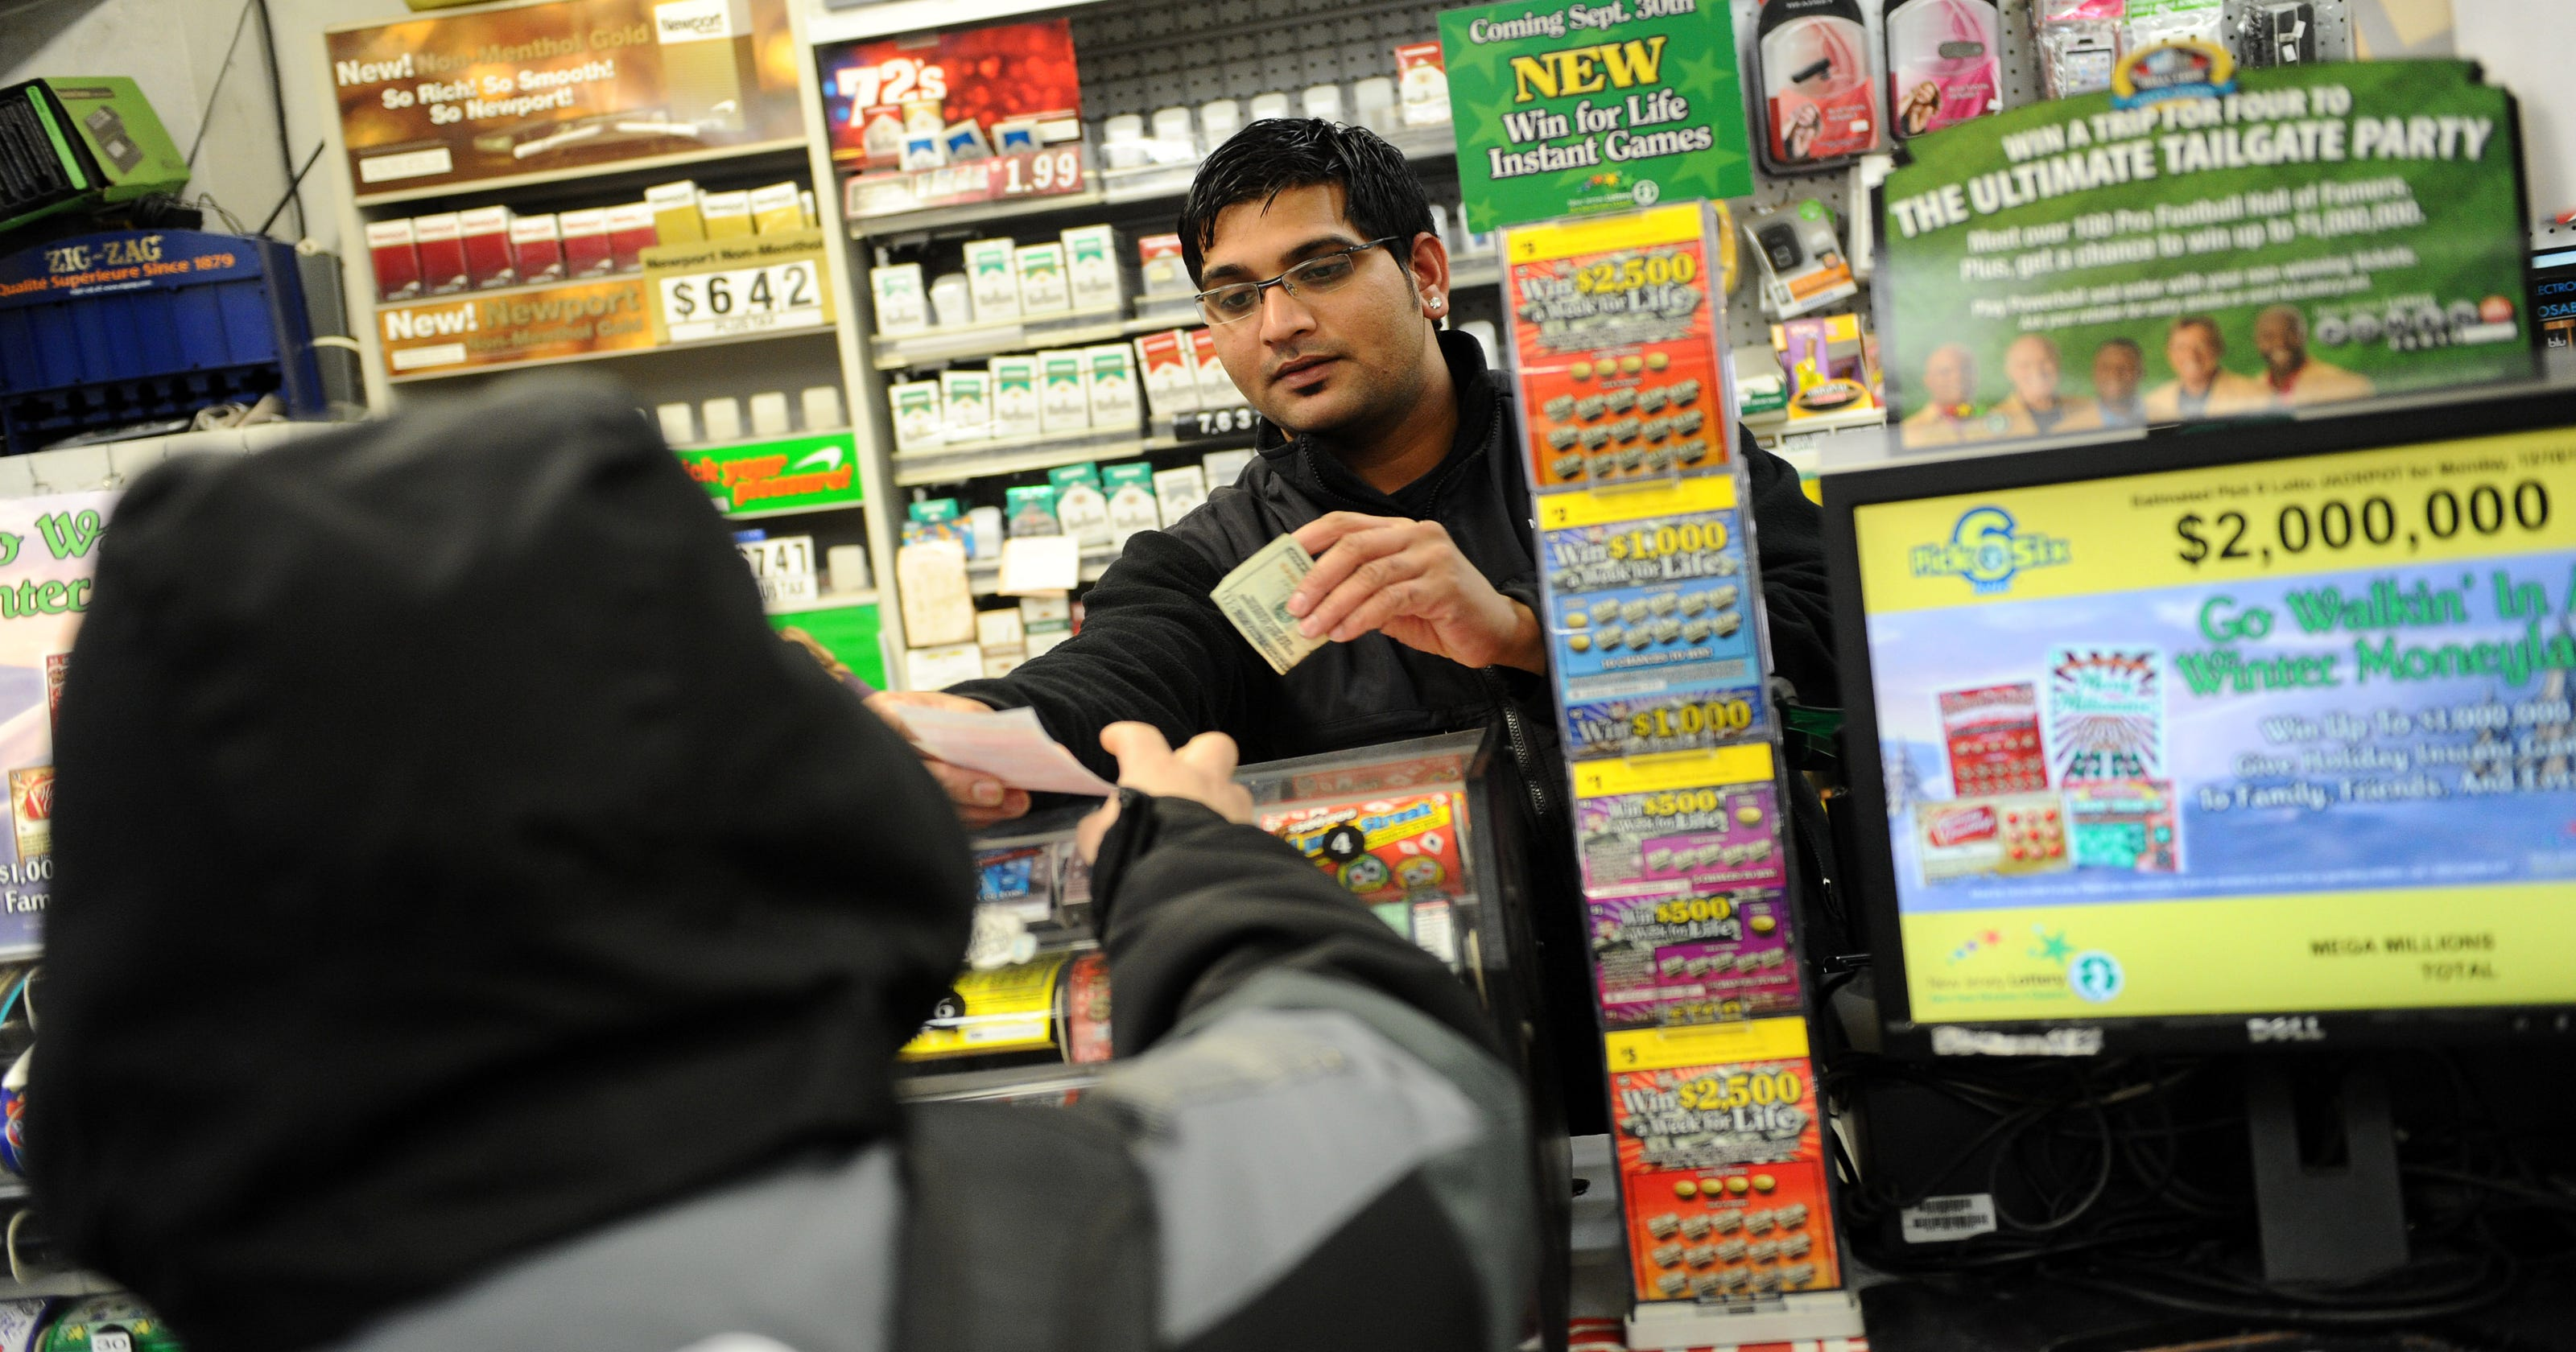 Just won the $900 million Mega Millions jackpot? Shut your mouth and call a lawyer